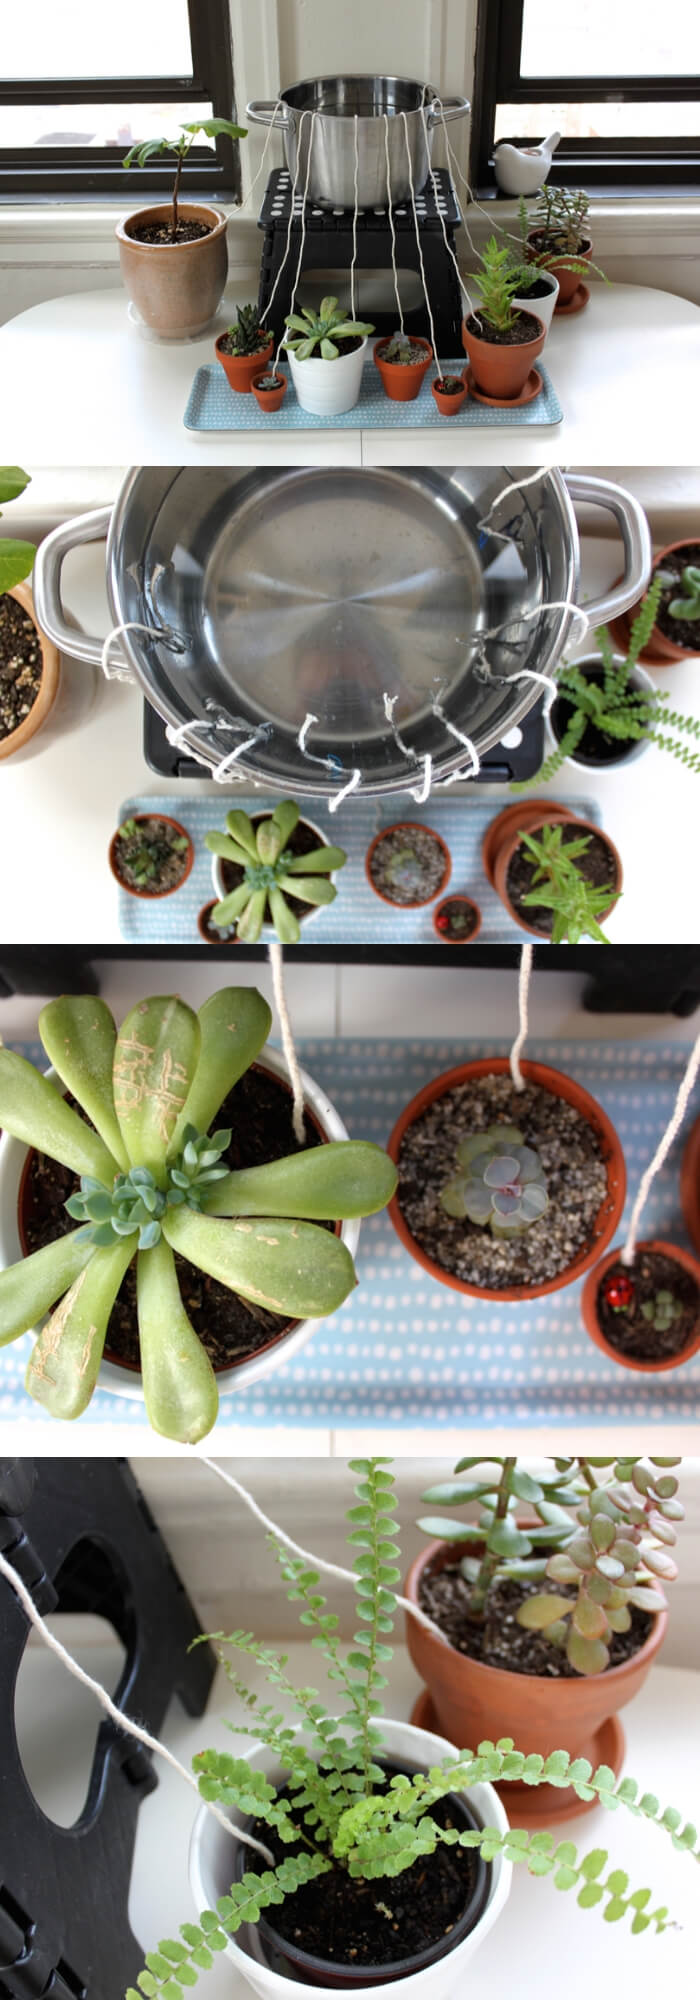 Self-watering for houseplants | Best DIY Self-Watering System Ideas